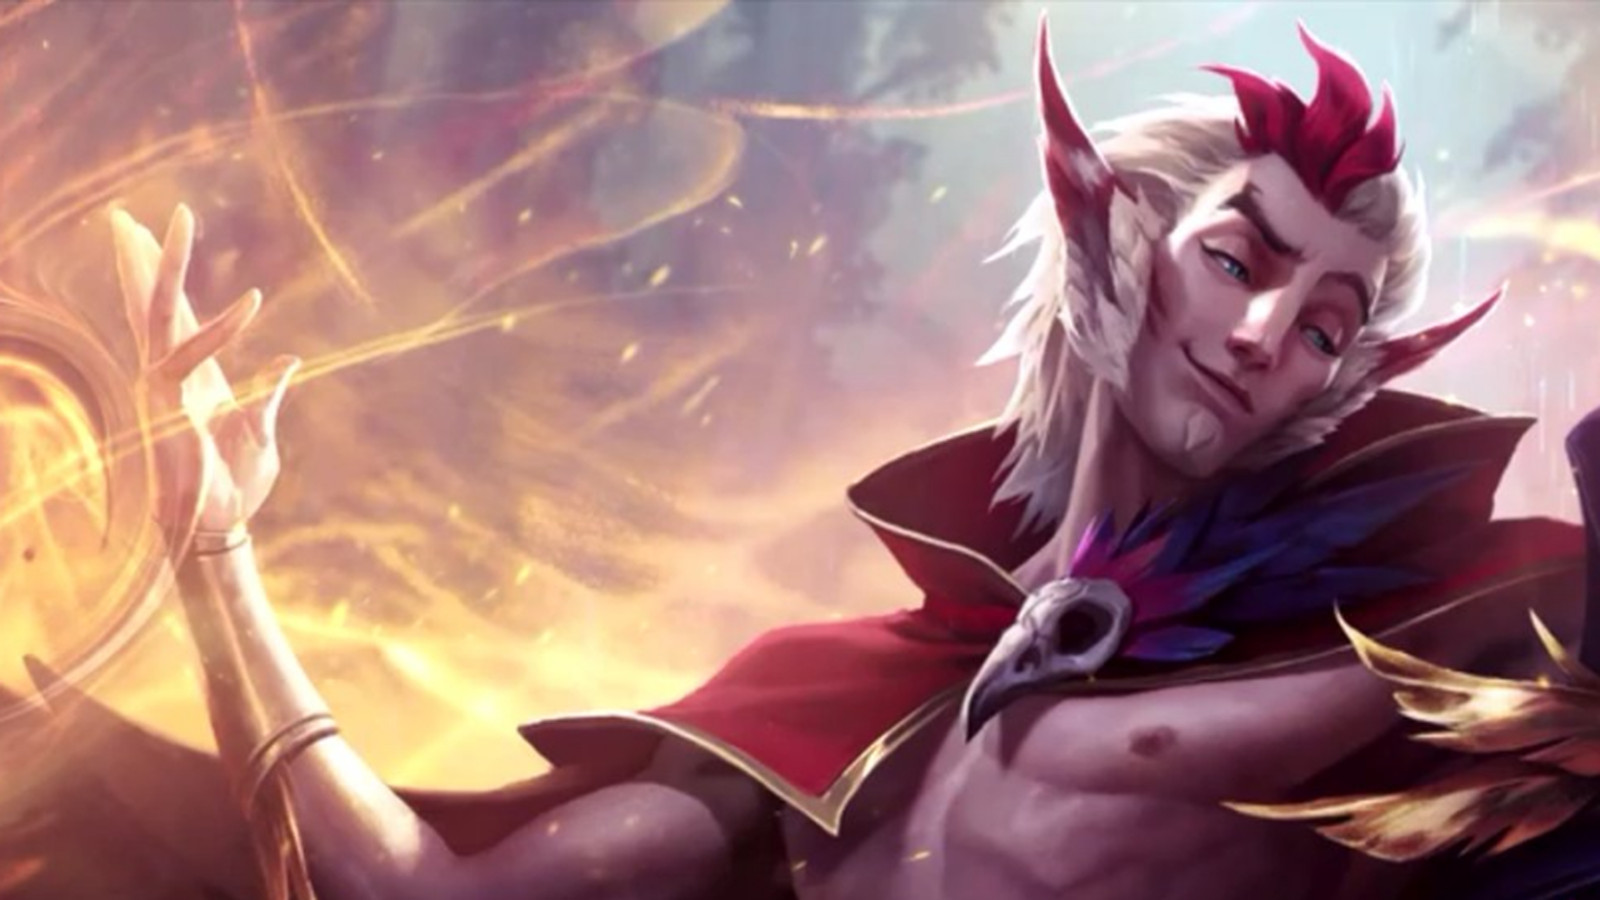 Cool Video Game Wallpapers Hd Rakan Guide League Of Legend S Newest Support The Rift